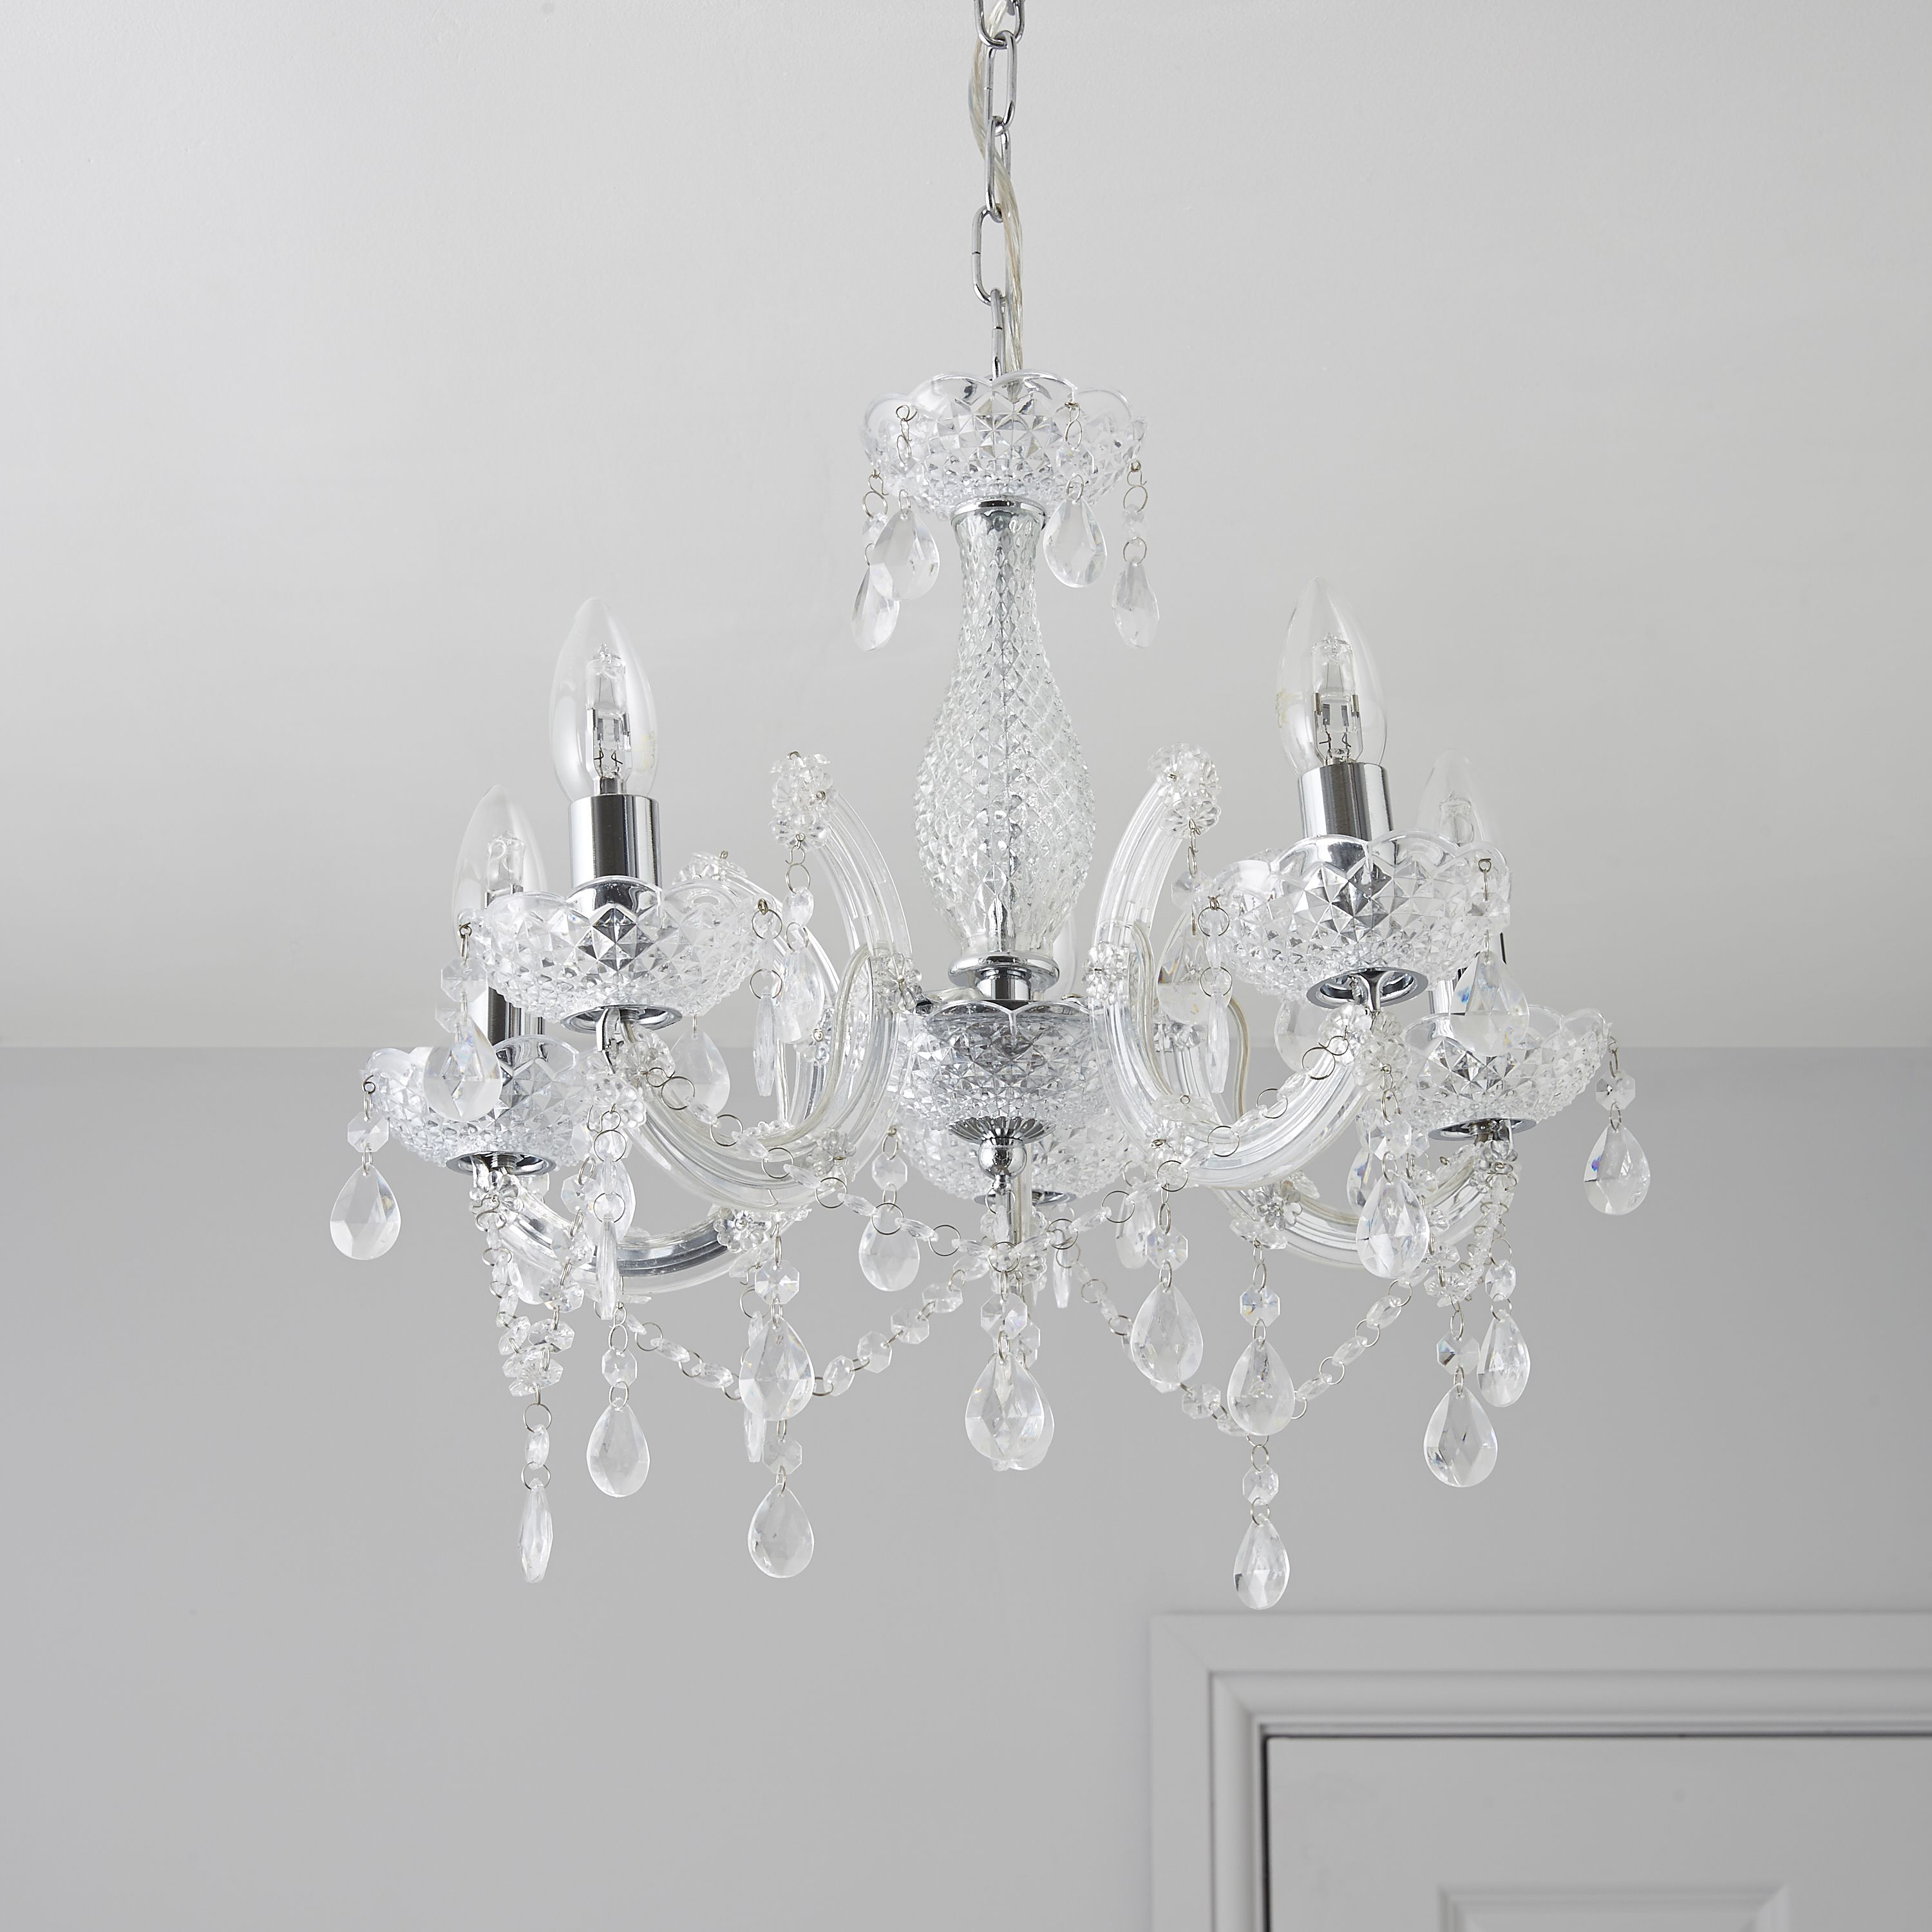 Inspiring chandelier light b and q contemporary simple design amazing b and q lighting ceiling pictures best inspiration home aloadofball Image collections